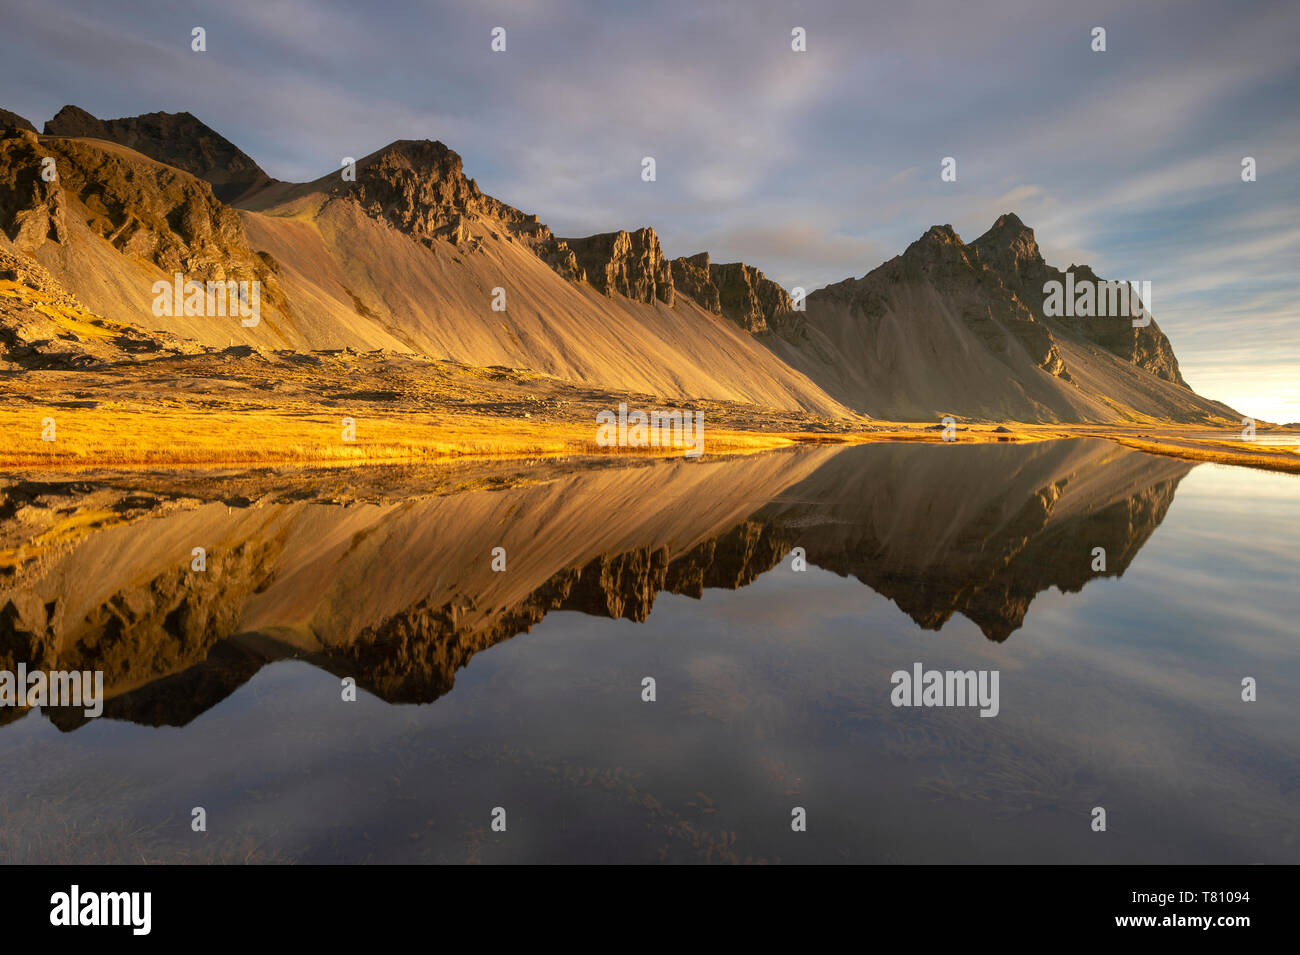 View of mountains of Vestrahorn and perfect reflection in shallow water, soon after sunrise, Stokksnes, South Iceland, Iceland, Polar Regions - Stock Image